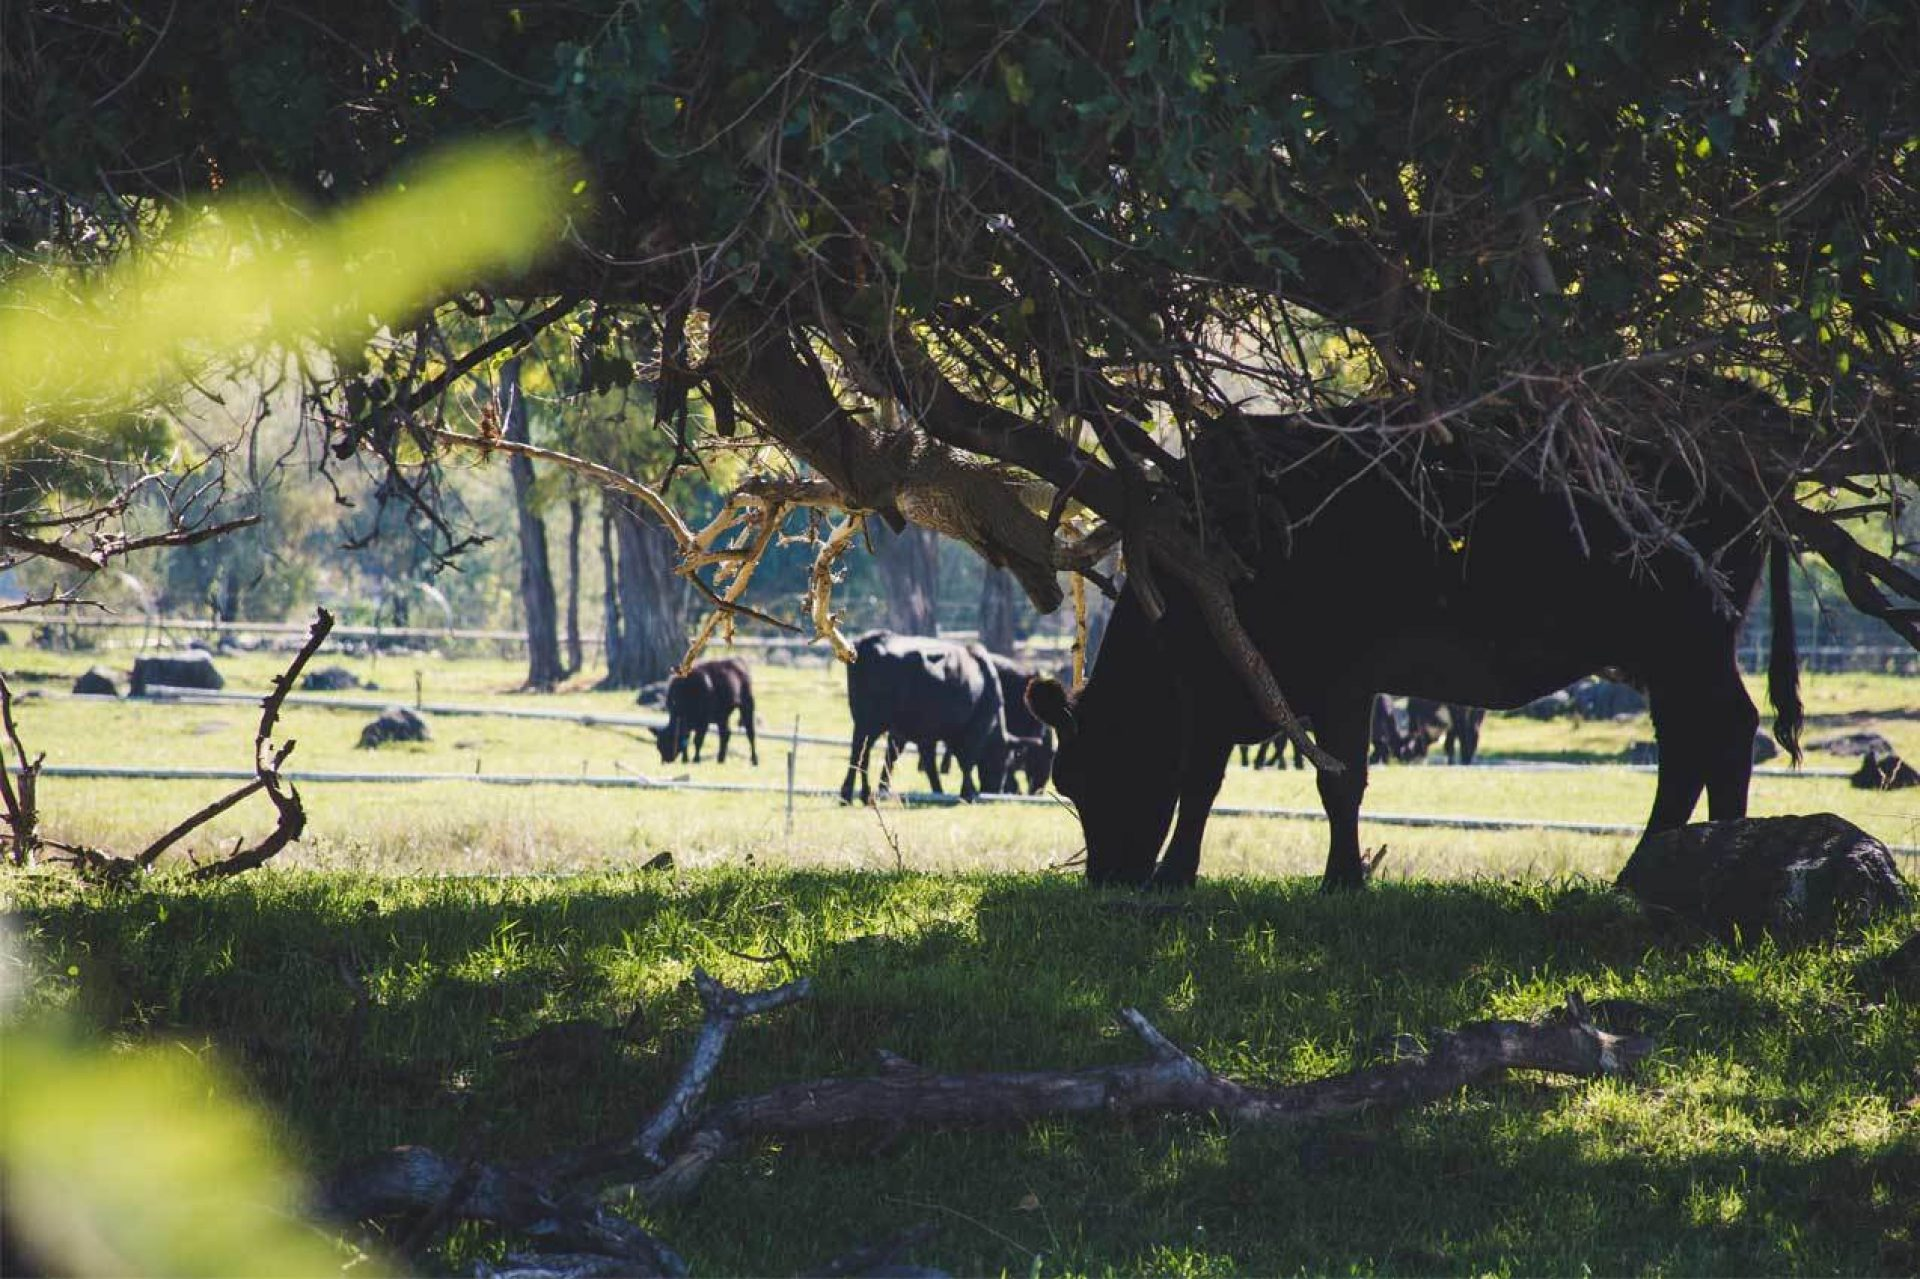 Black cows eating under tree in grass field